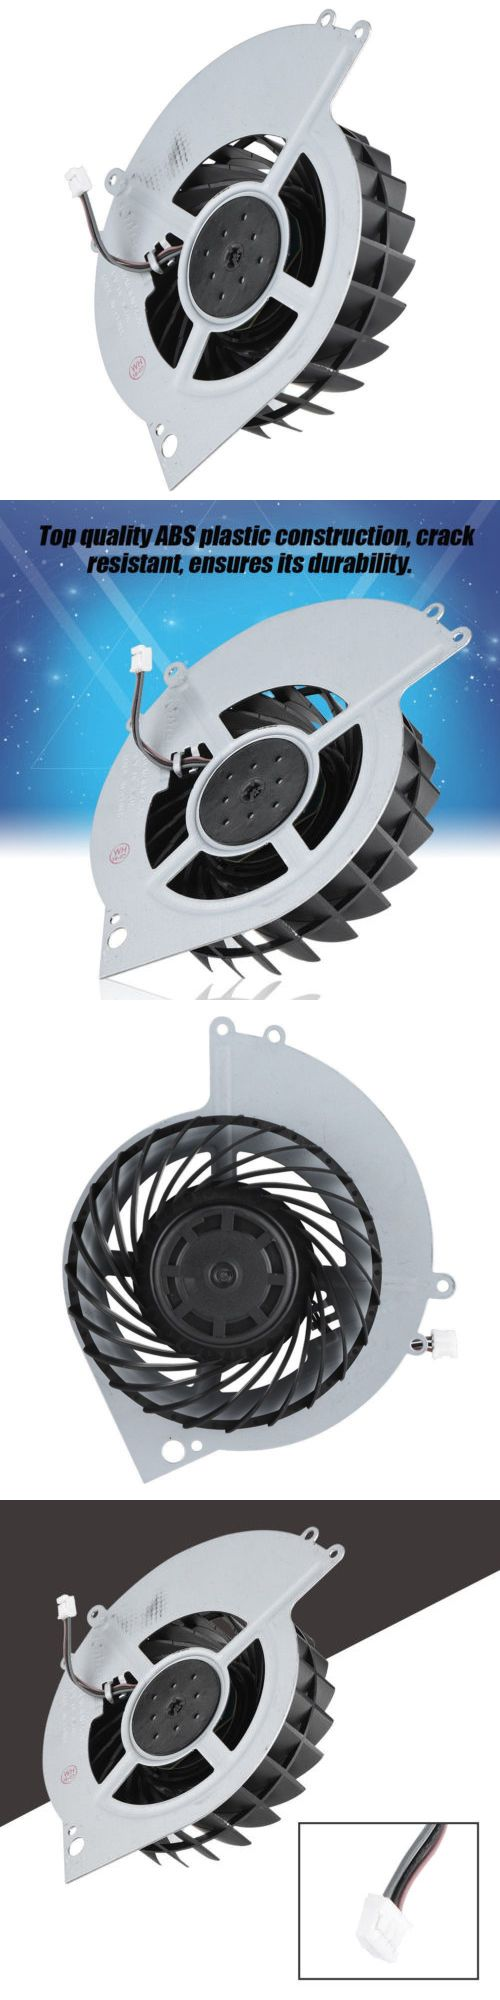 Cooling Devices 171898: For Sony Ps4 - Cooling Fan 23 Blade